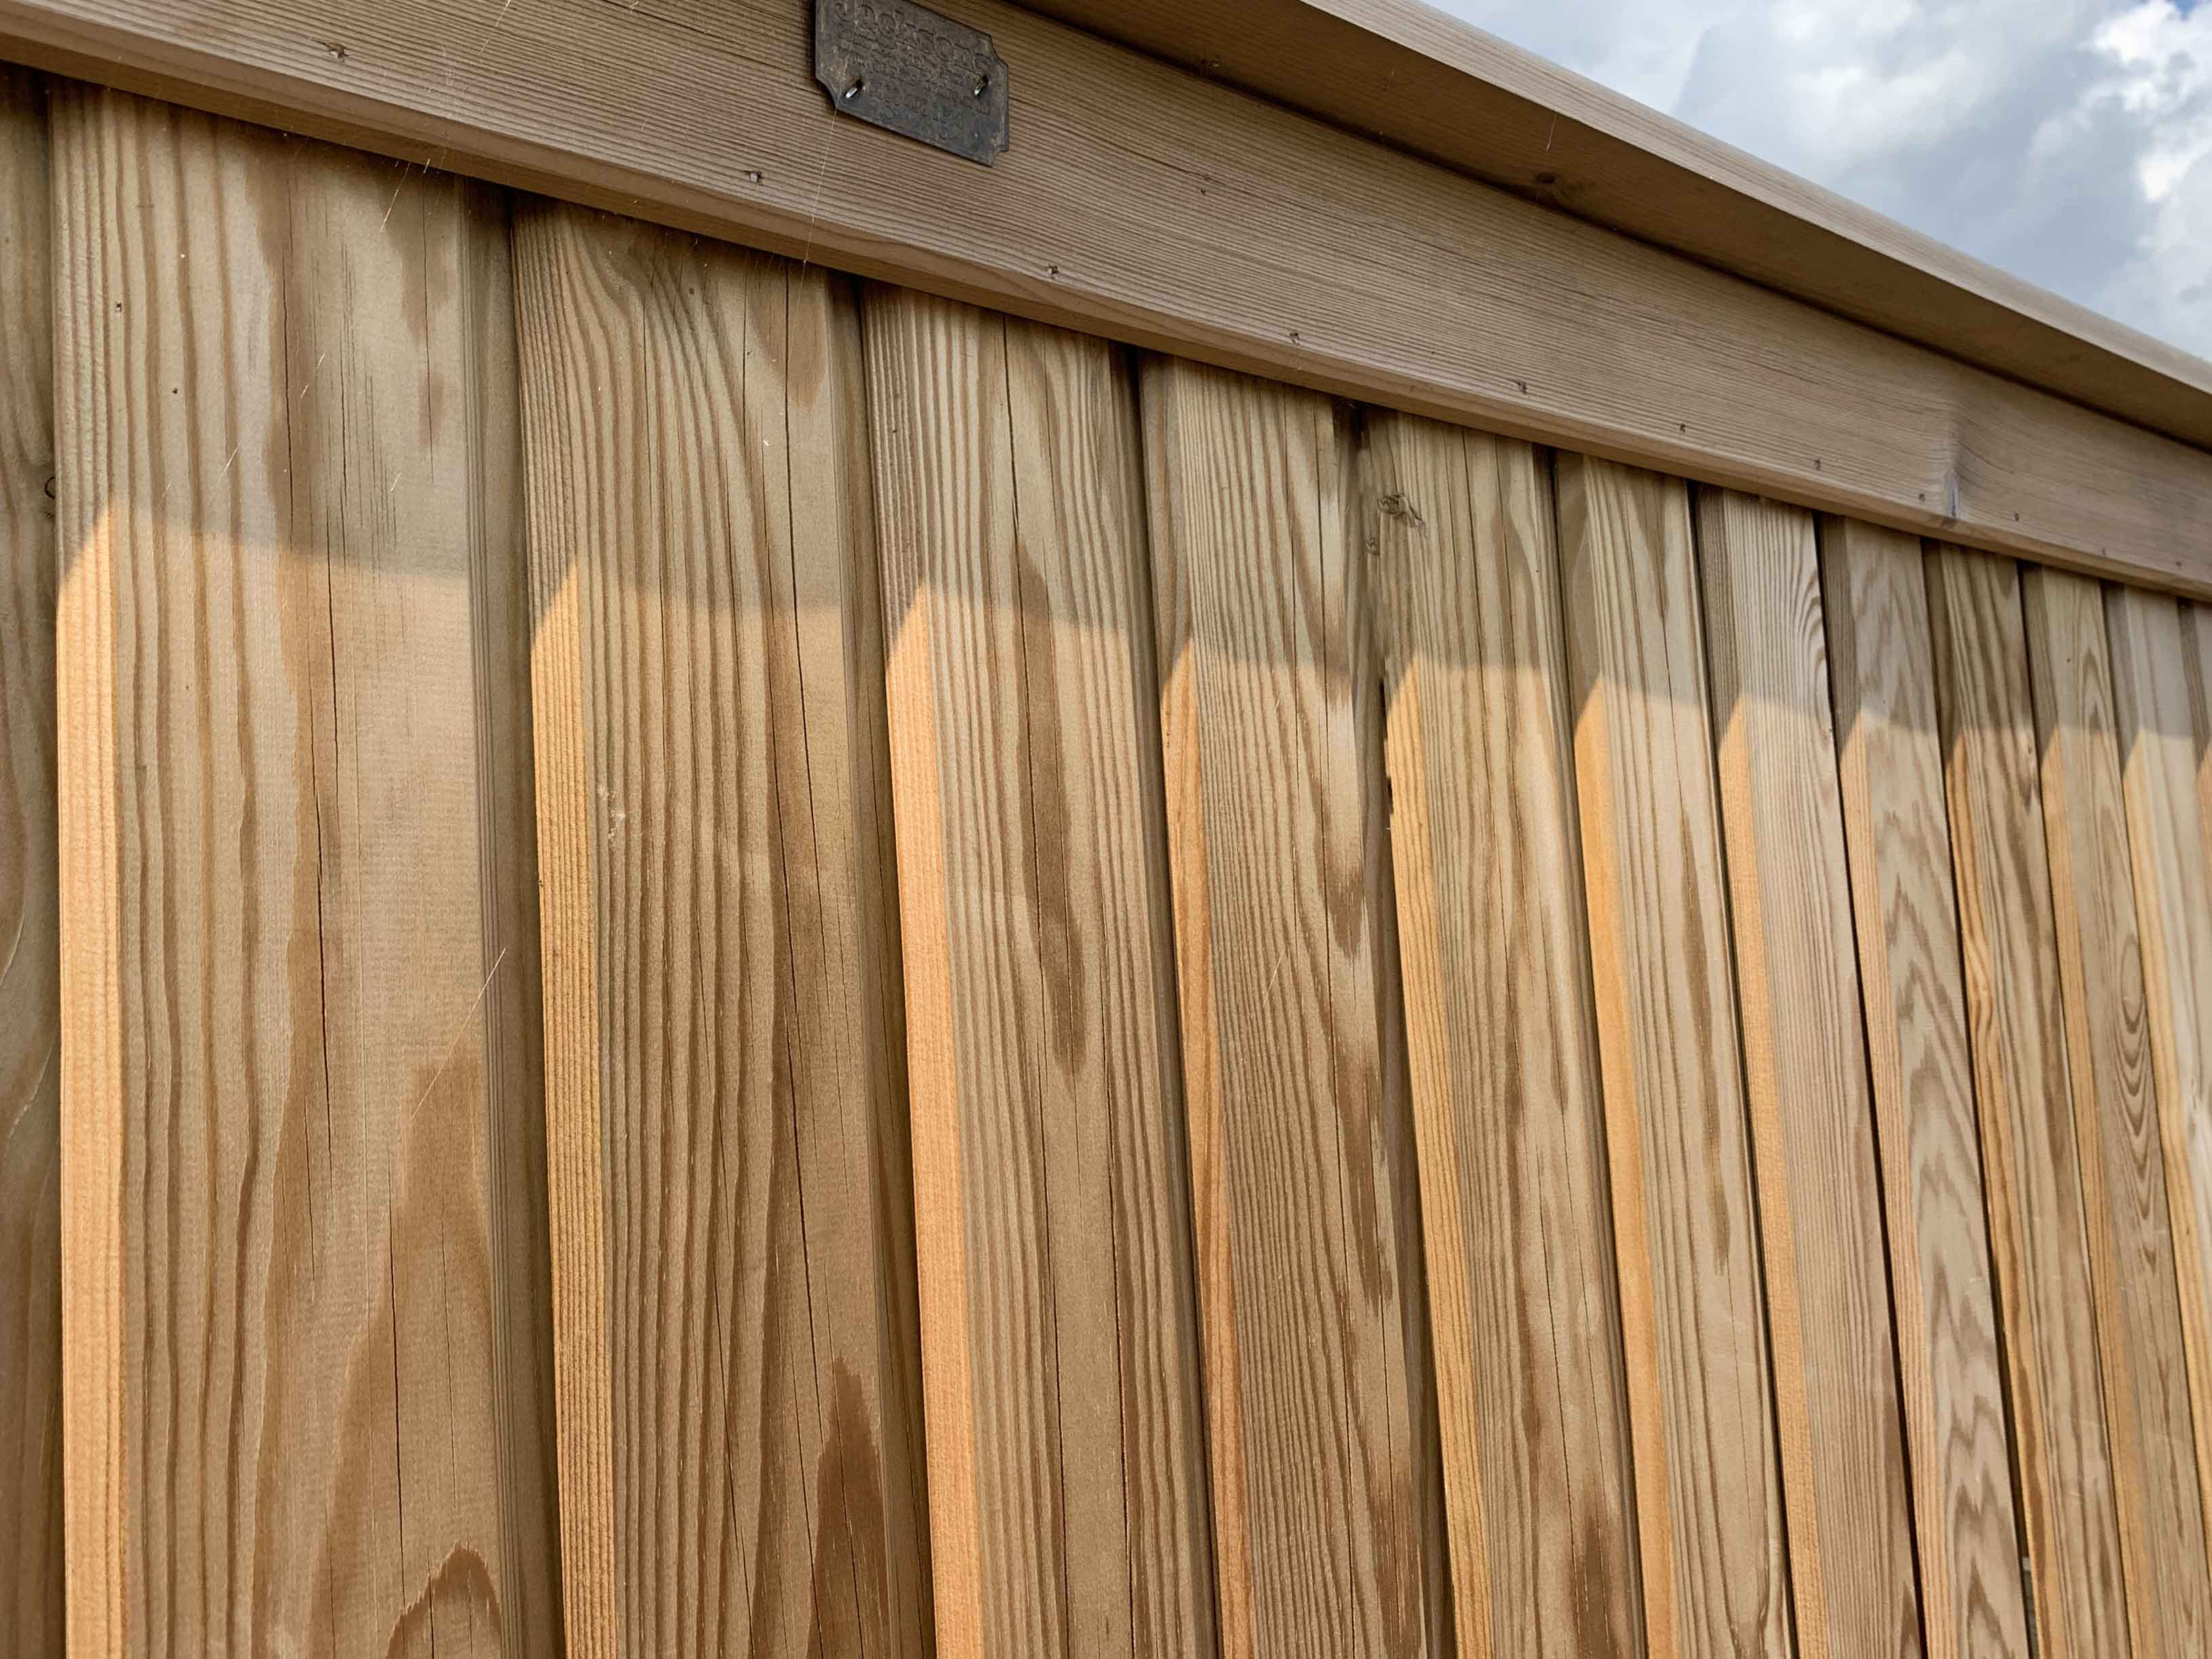 Vertical boarded fence panel